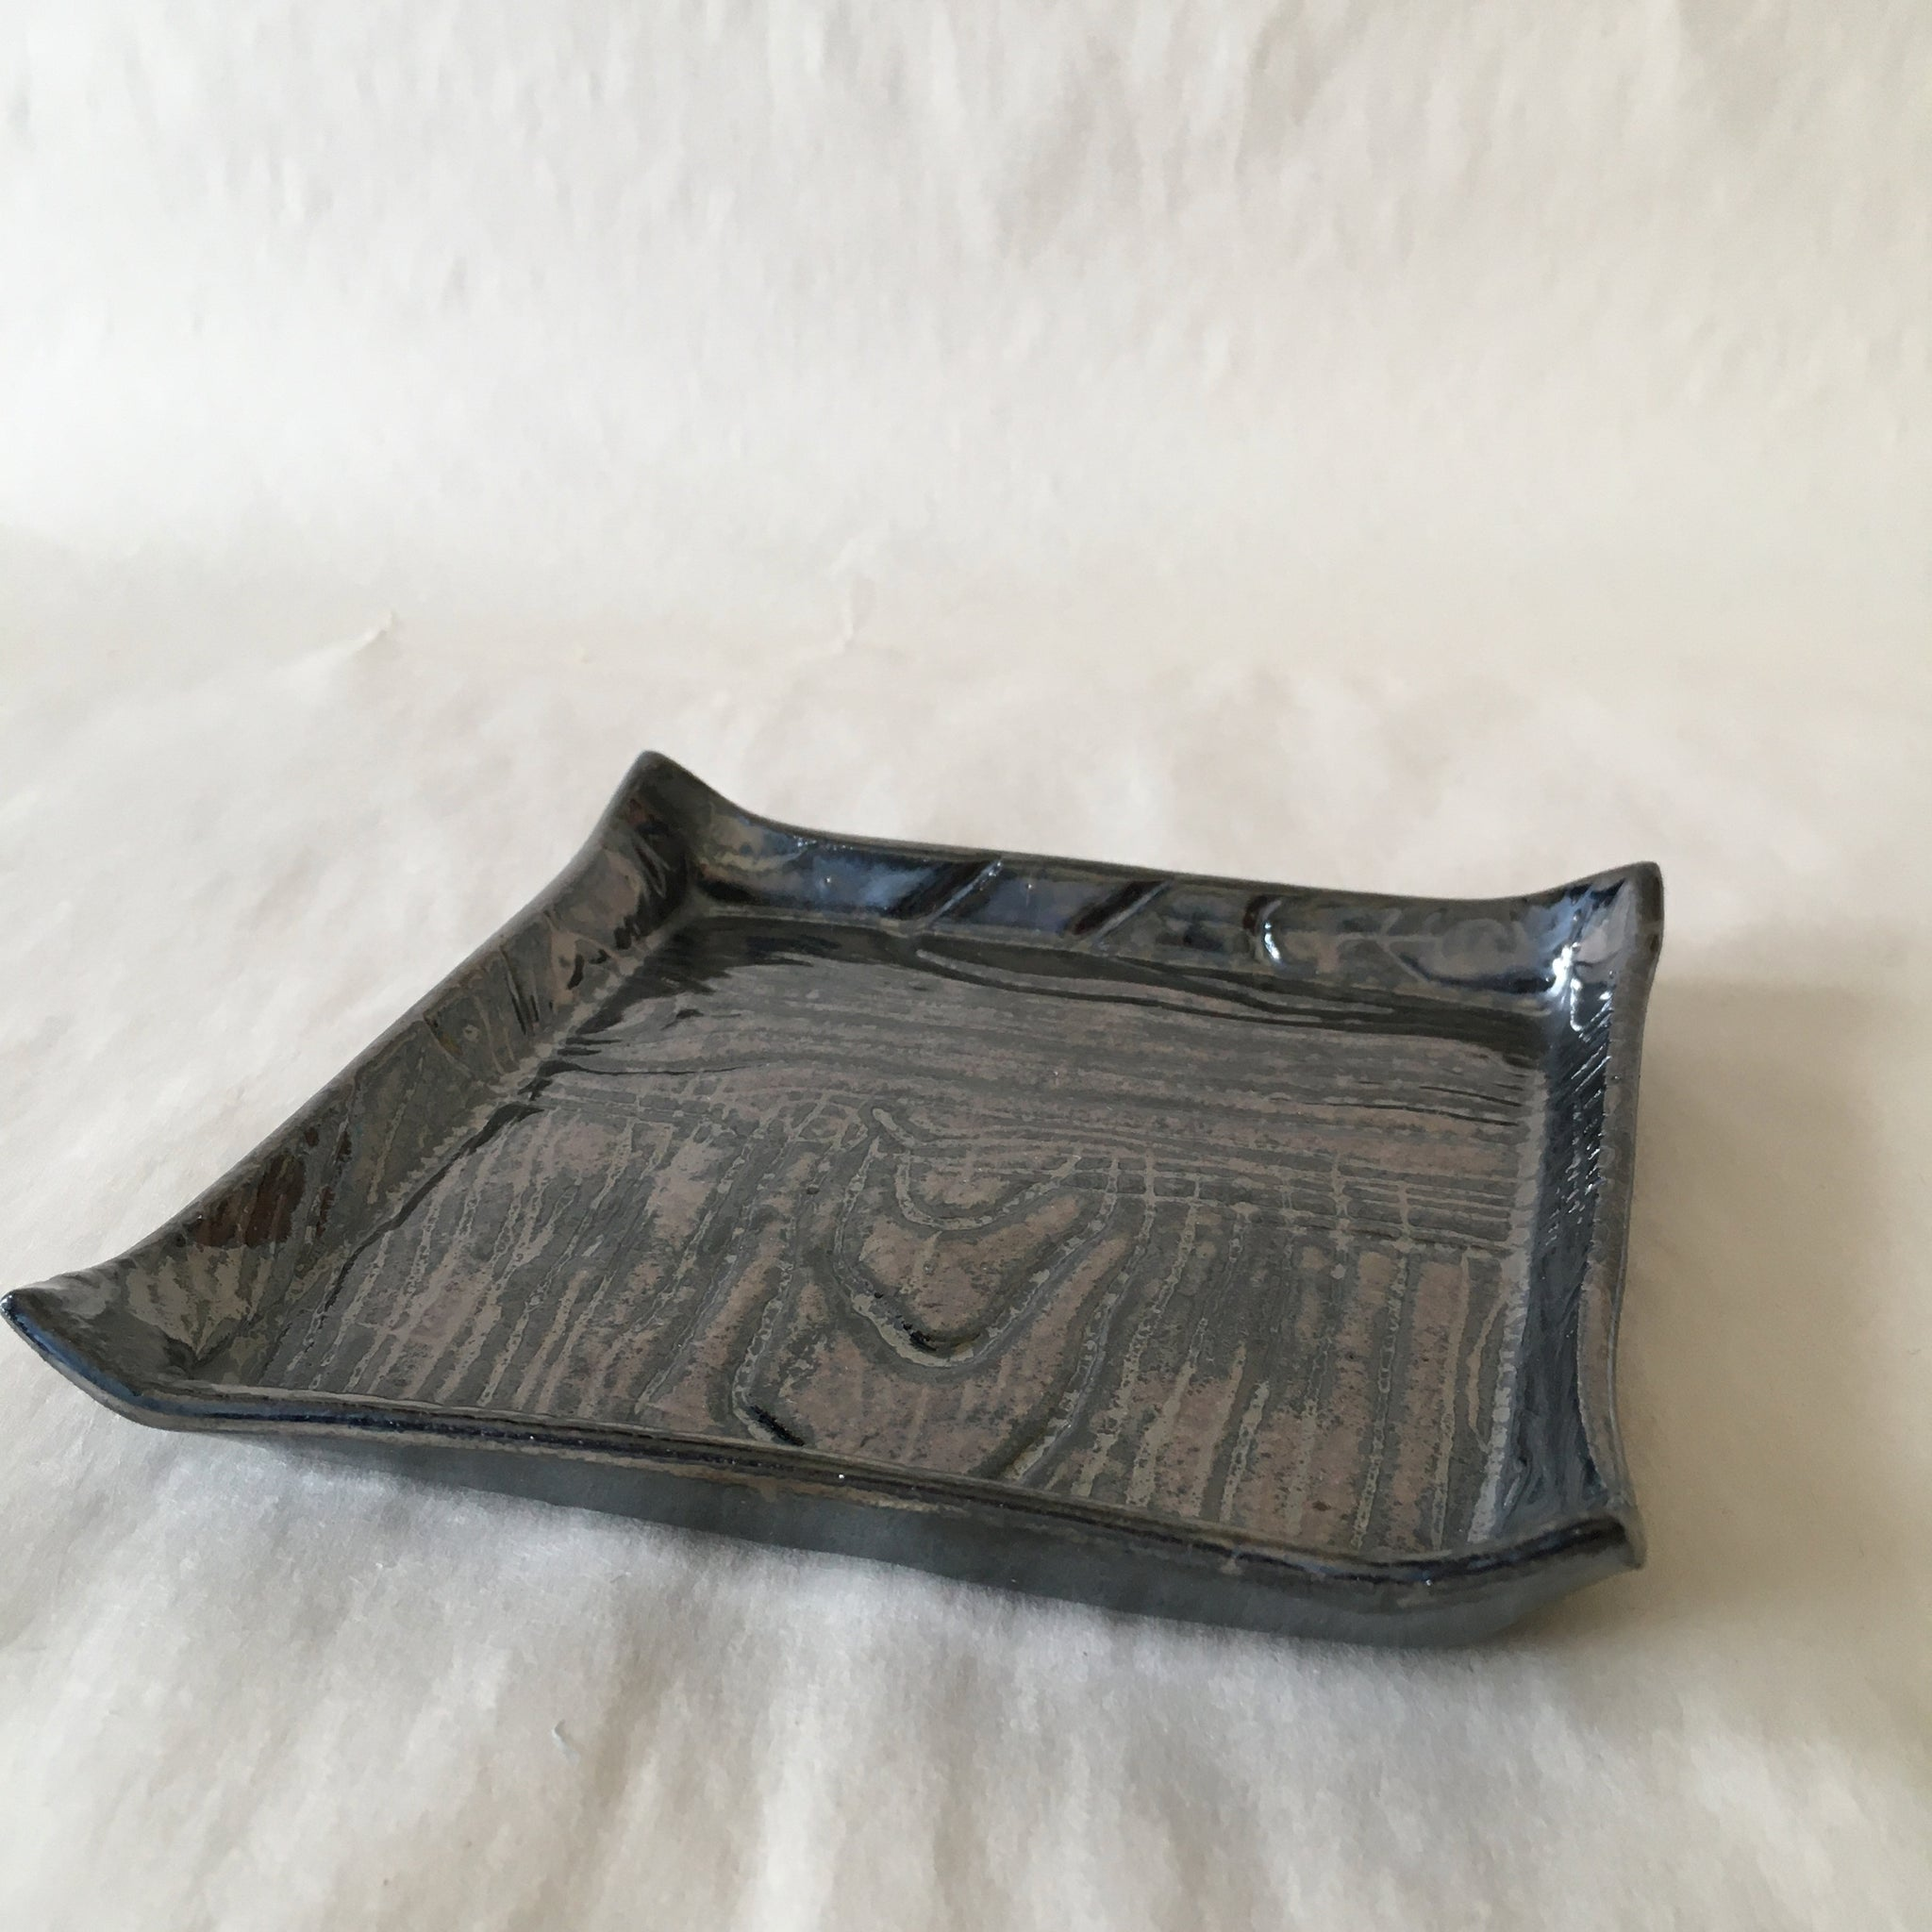 Metallic Faux Bois Catchall Dish